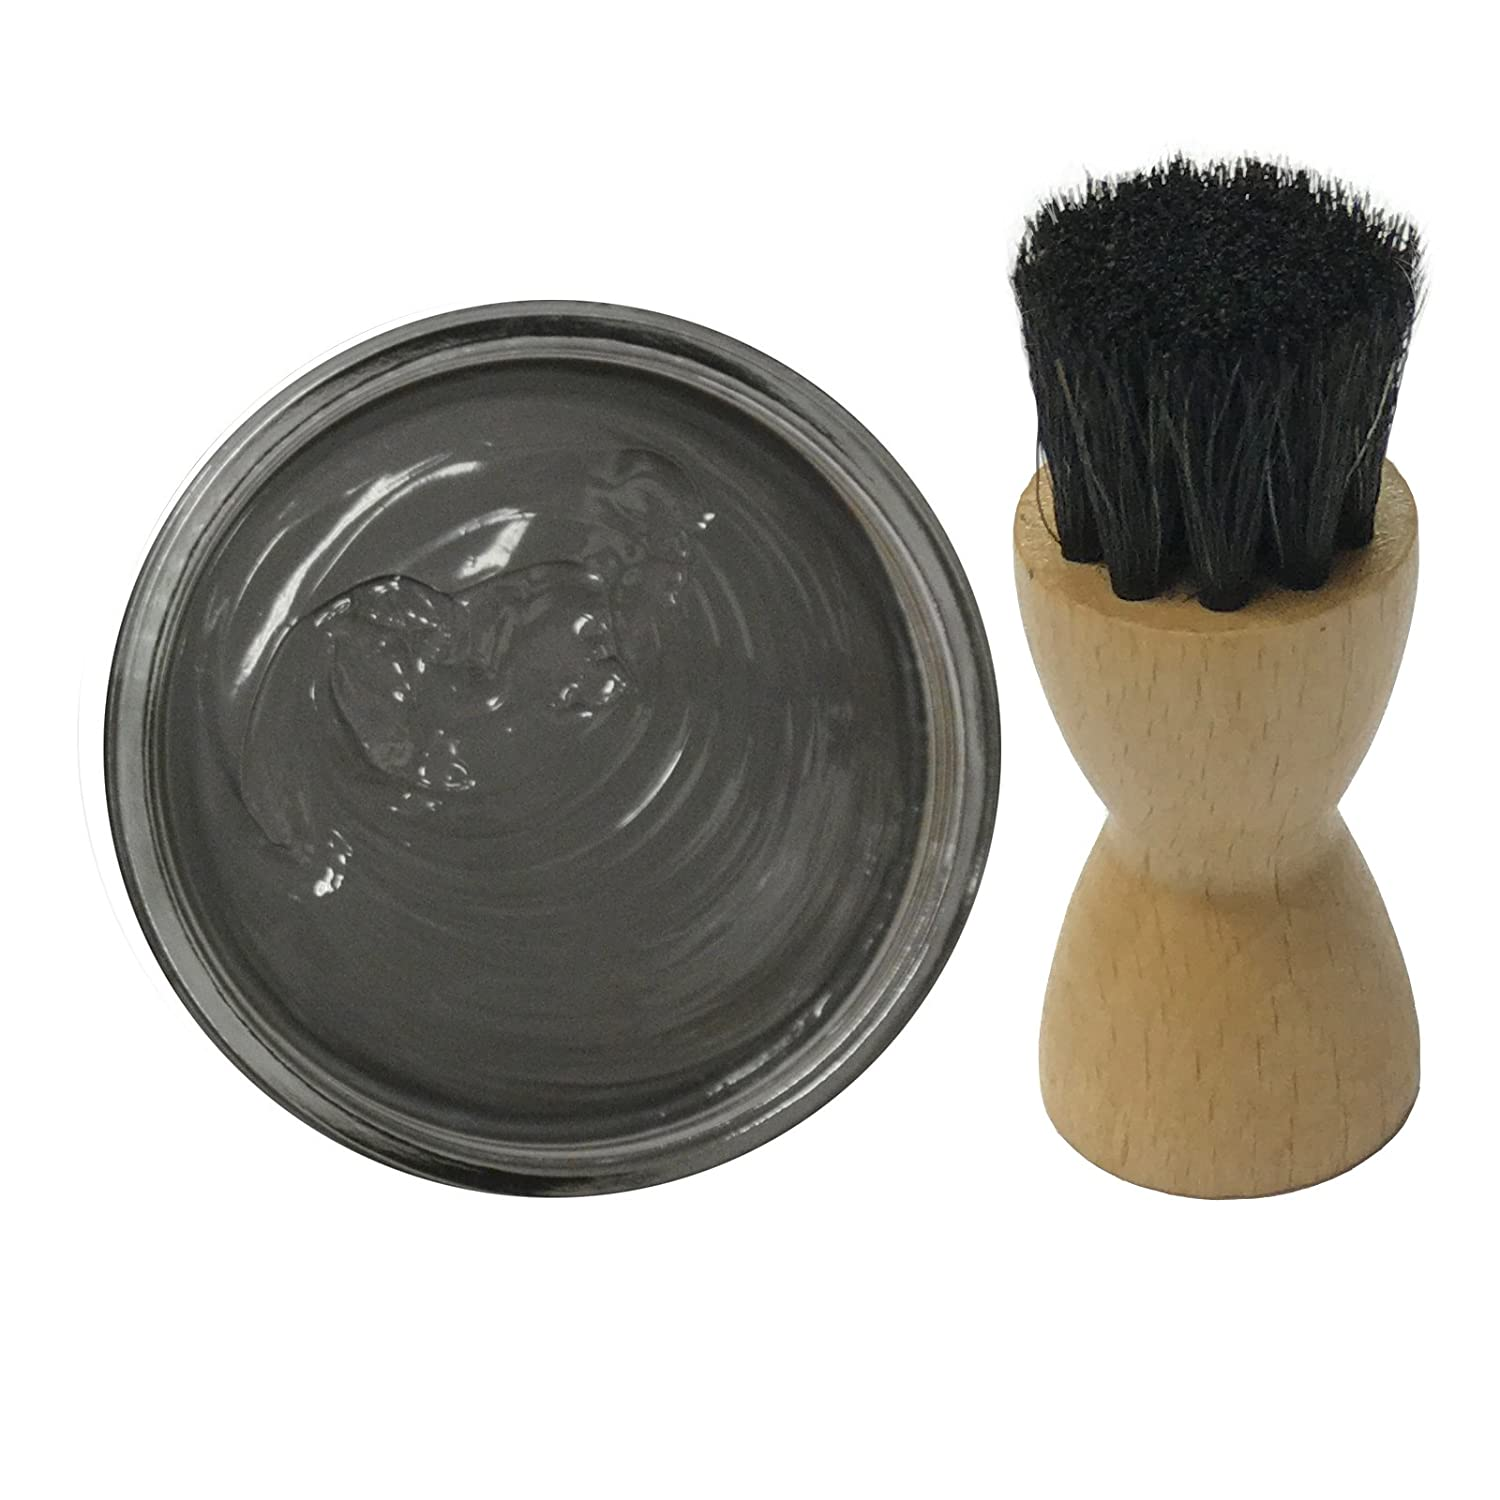 Famaco GREY DARK GRIS Shoe Cream Polish 50ml & Famaco Application Brush